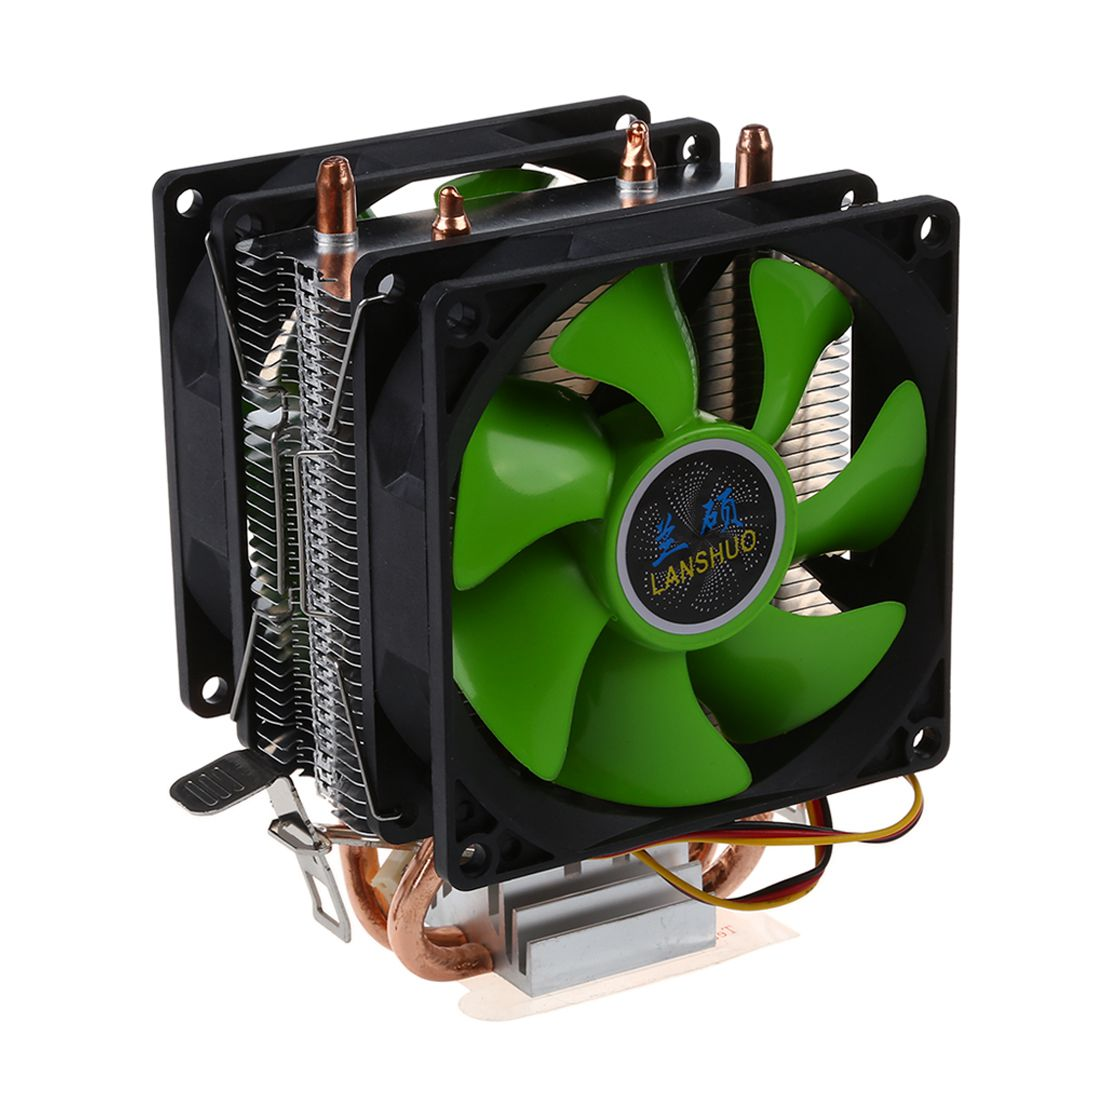 HOT-CPU cooler Silent Fan For Intel LGA775 / 1156/1155 AMD AM2 / AM2 + / AM3 best quality pc cpu cooler cooling fan heatsink for intel lga775 1155 amd am2 am3